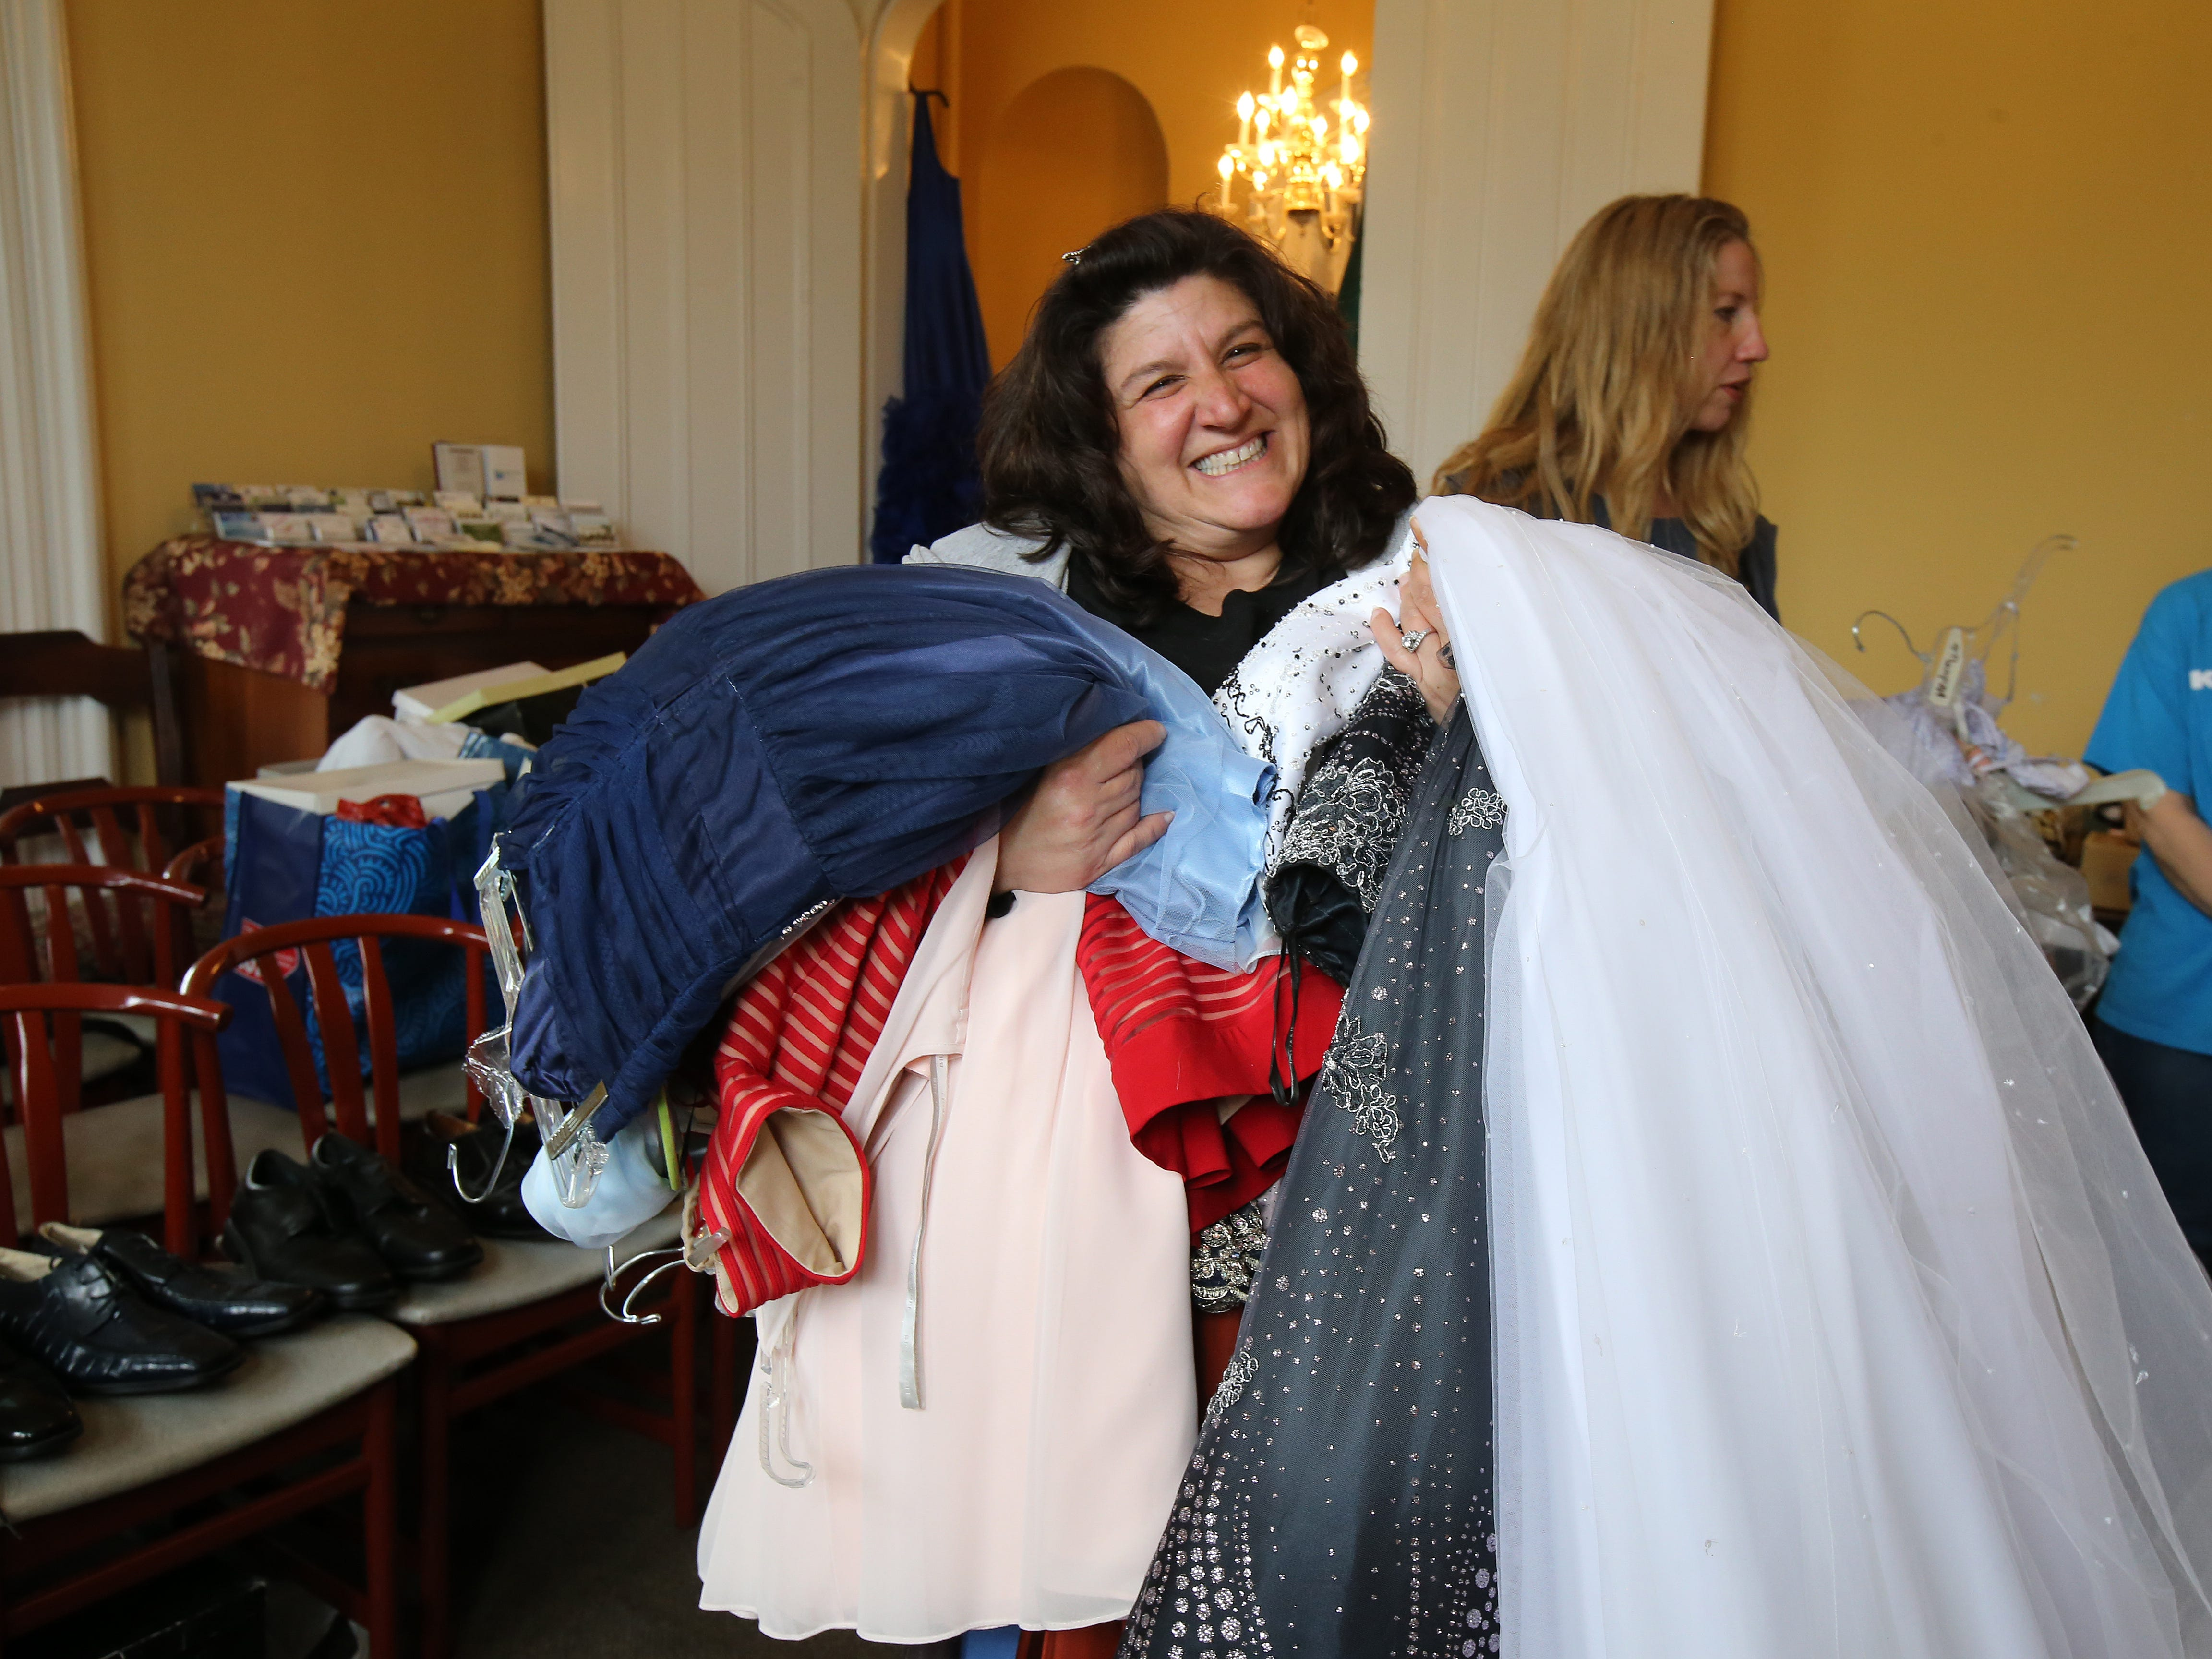 Marie Griffin of Freehold Boro holds her 14-year-old daughter's prom dress picks during Lunch Break's 4th Annual Prom Giveaway Event at the Woman's Club of Red Bank in Red Bank, NJ Monday, April 22, 2019.